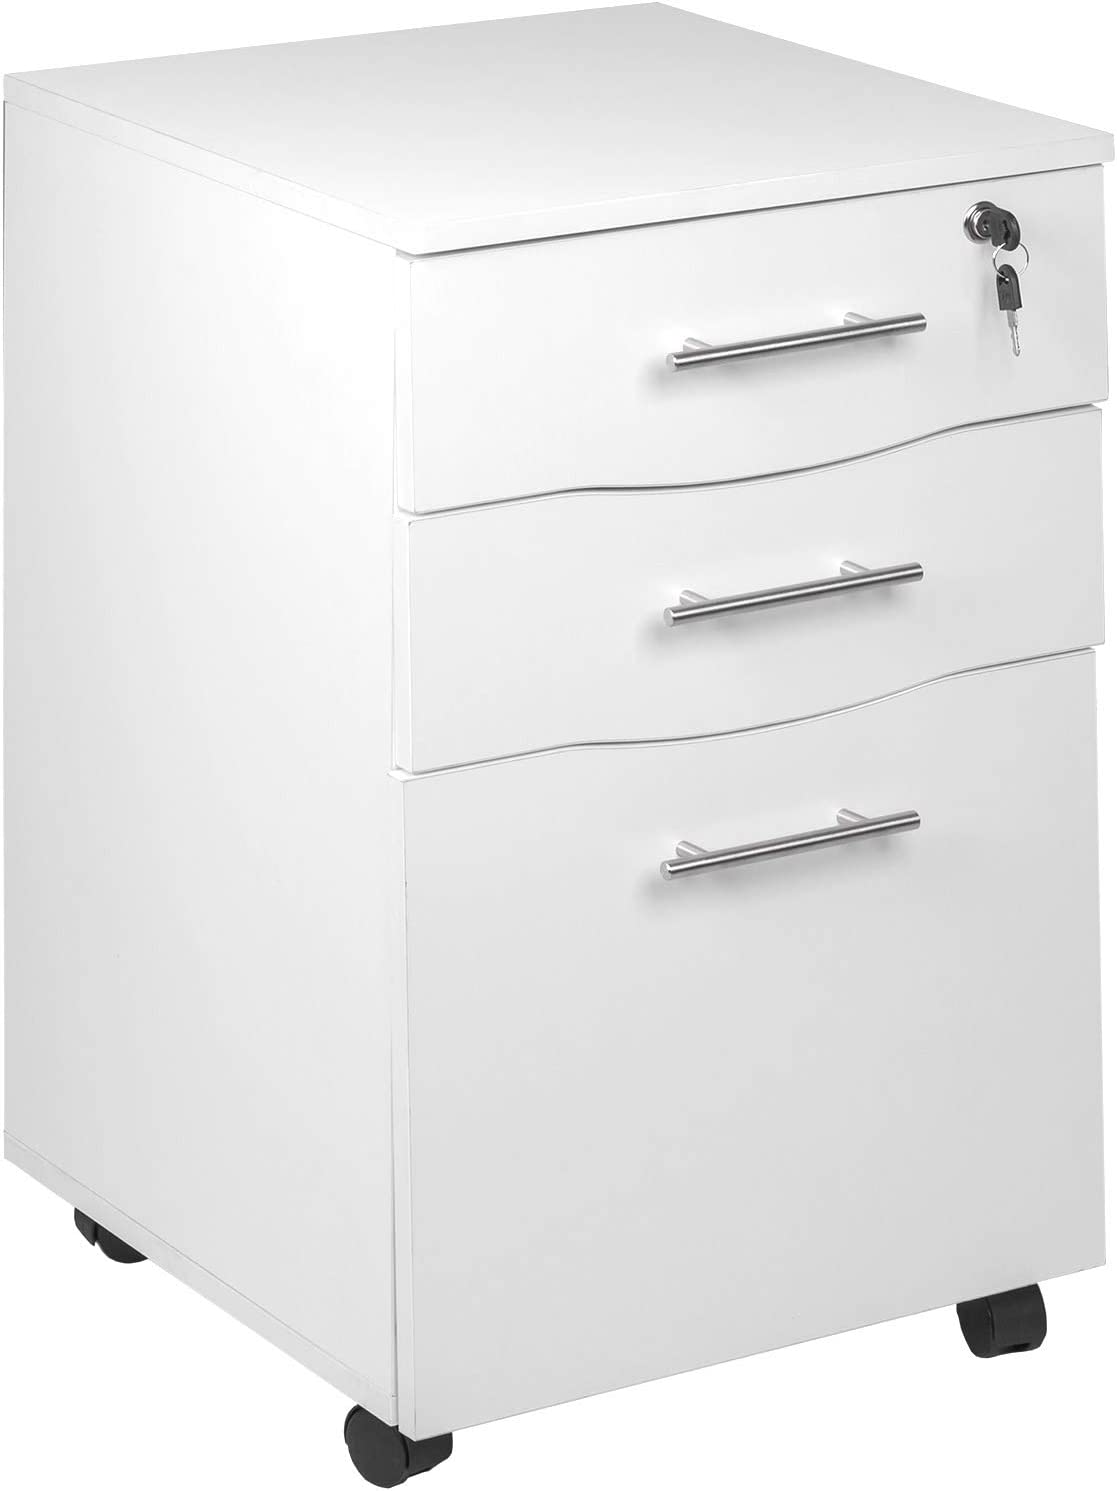 Amazon.com : Mobile 33 Drawer Lockable White Under Desk Pedestal